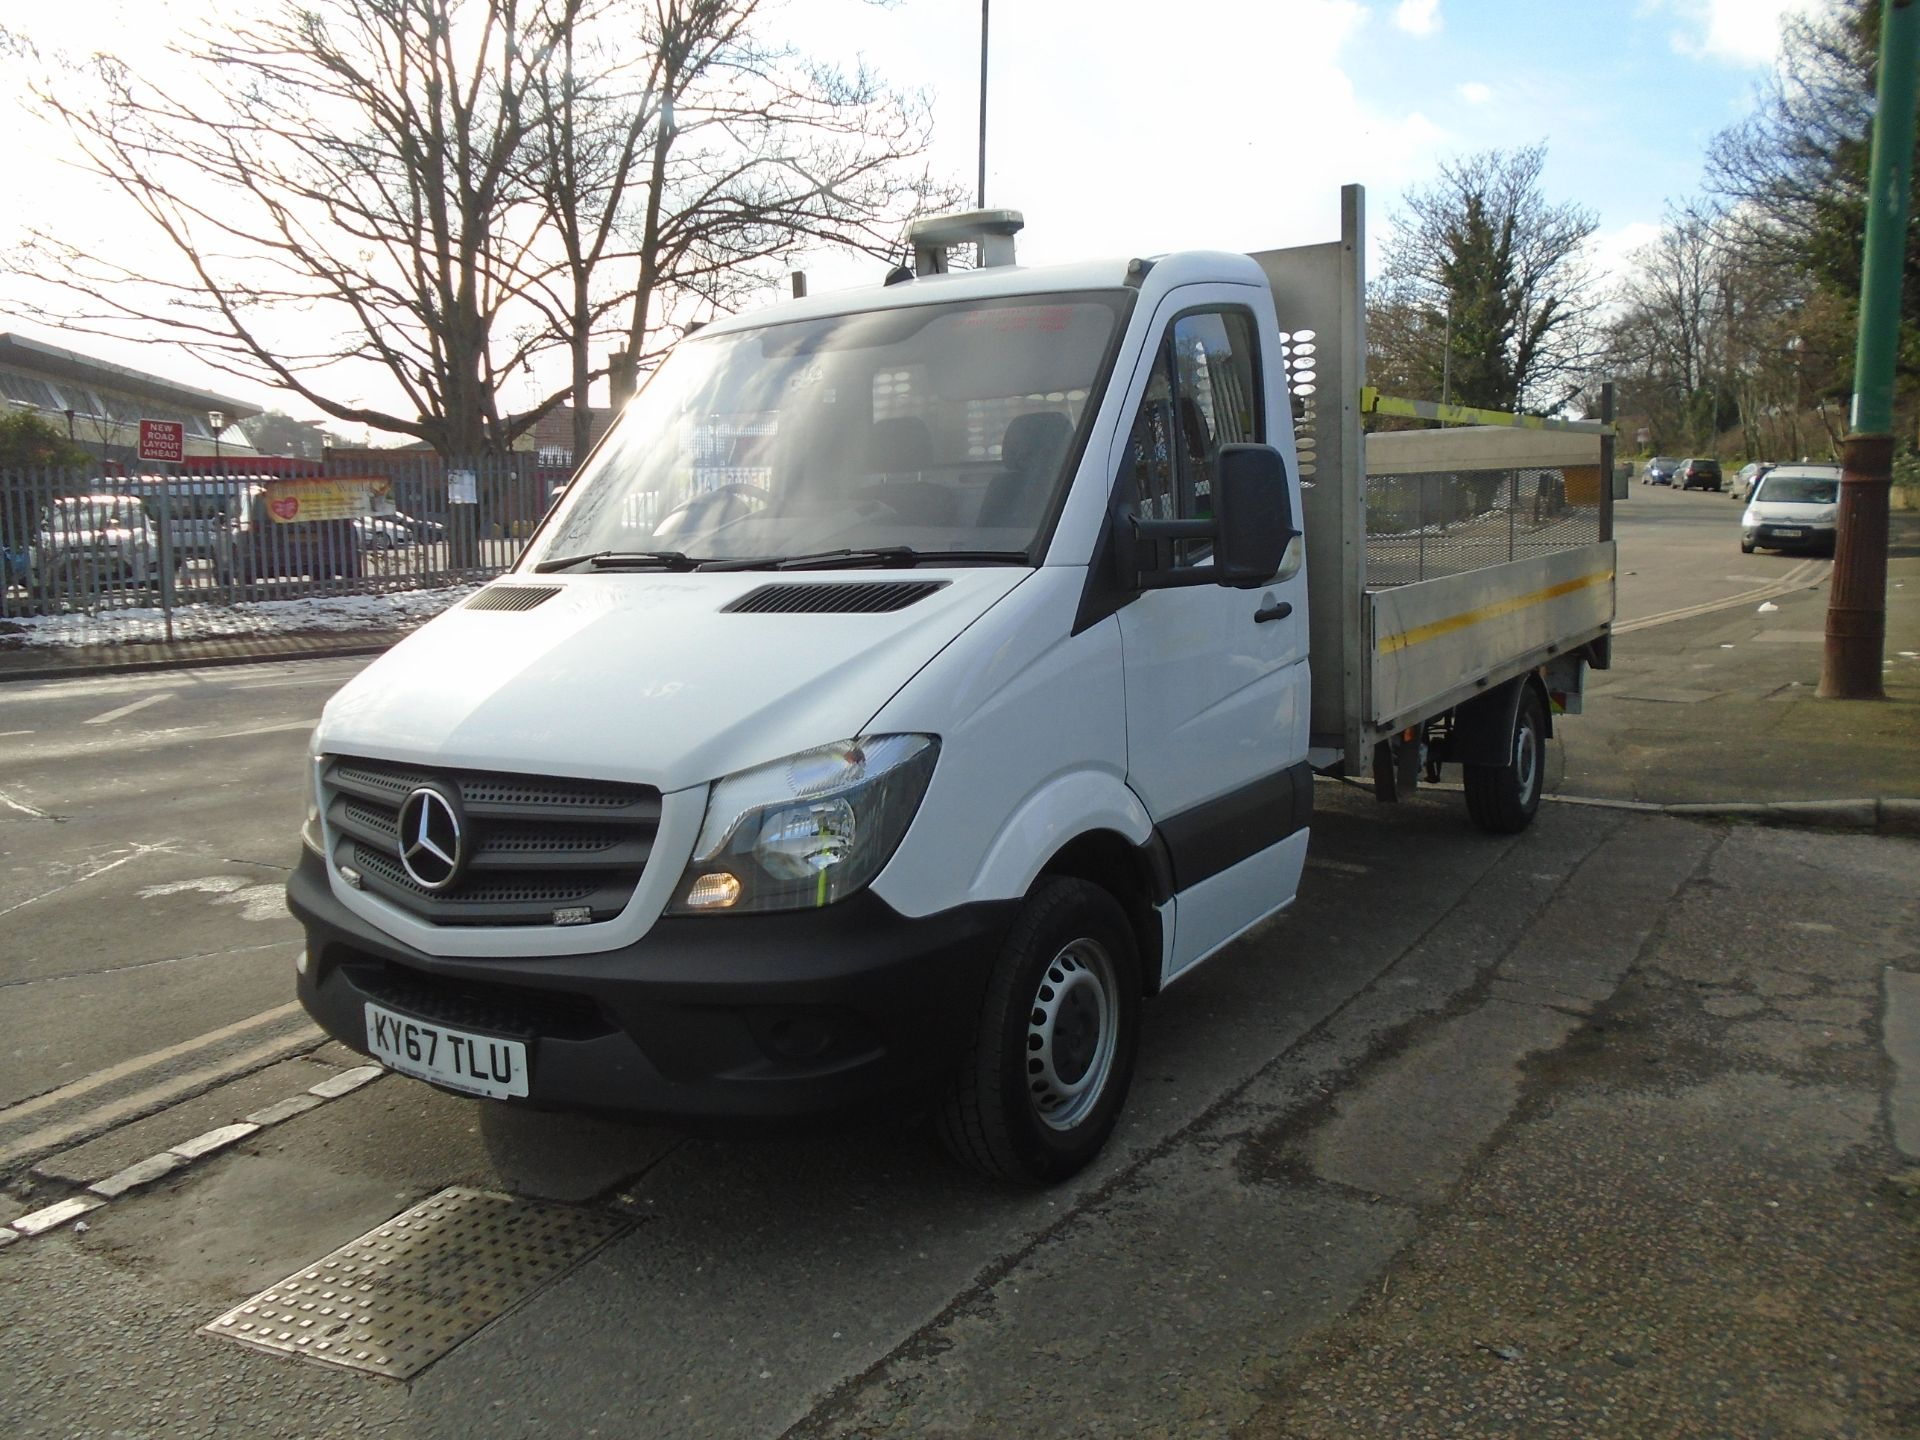 2017 Mercedes-Benz Sprinter 3.5T Chassis Cab *EURO 6* (KY67TLU) Image 3